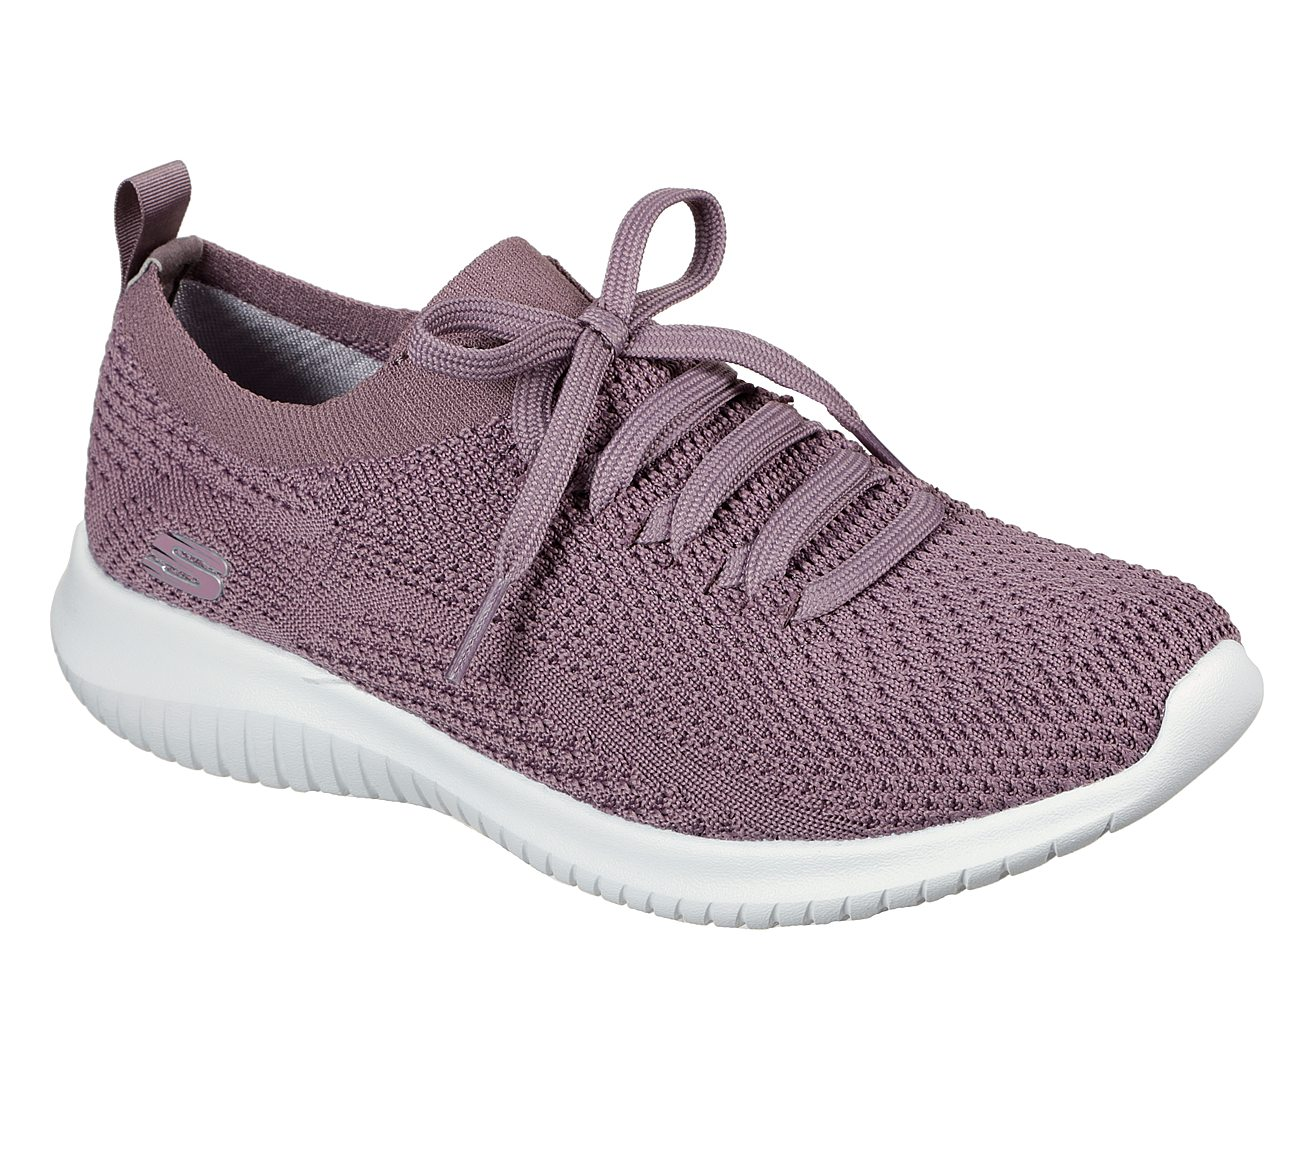 73180851 Buy SKECHERS Ultra Flex - Statements Sport Shoes only 70,00 €